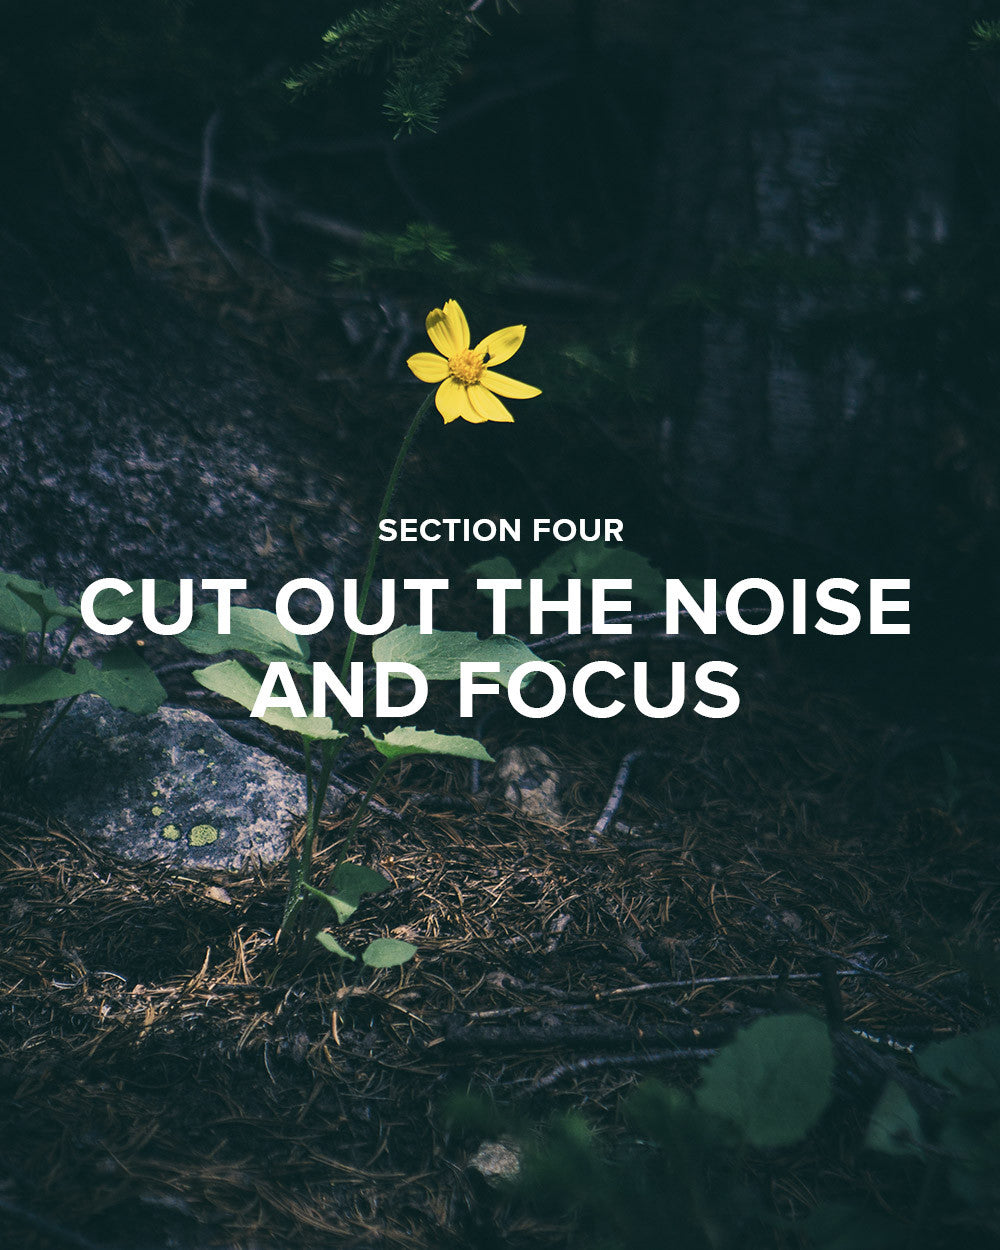 Section 4: Cut Out the Noise and Focus